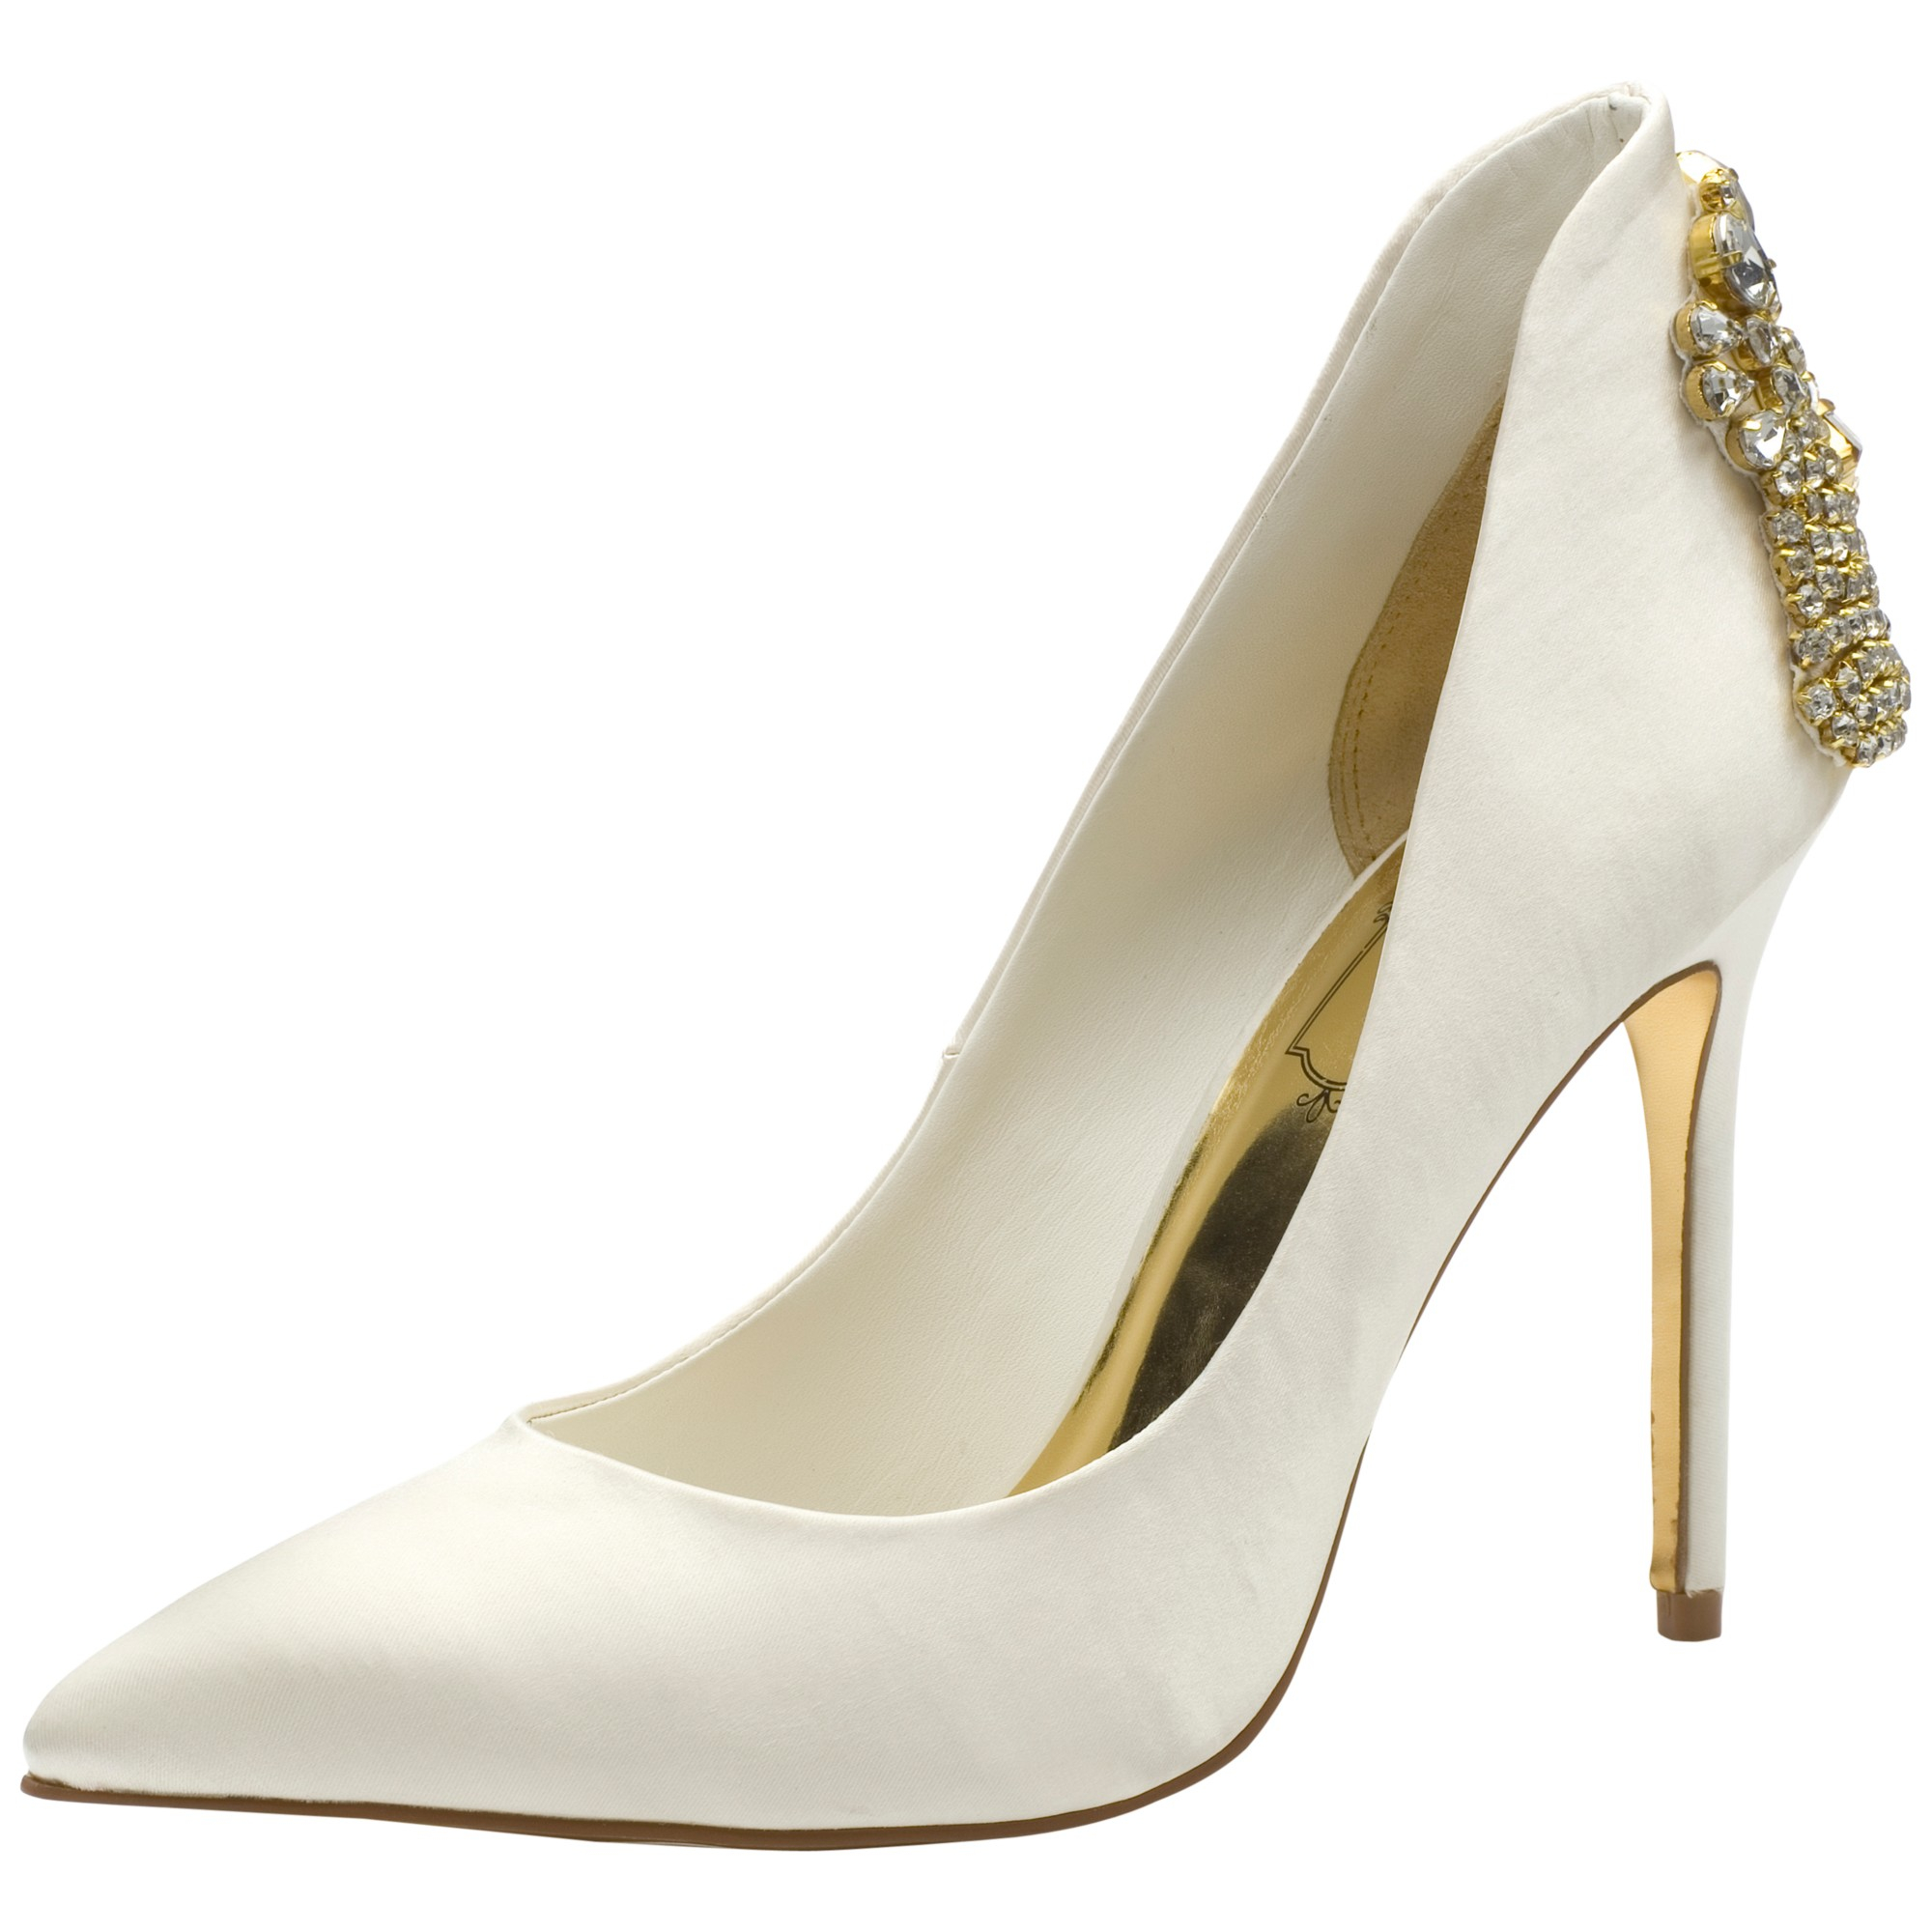 3503f774cb766a Ted Baker Mieon Embellished Court Shoes in Natural - Lyst